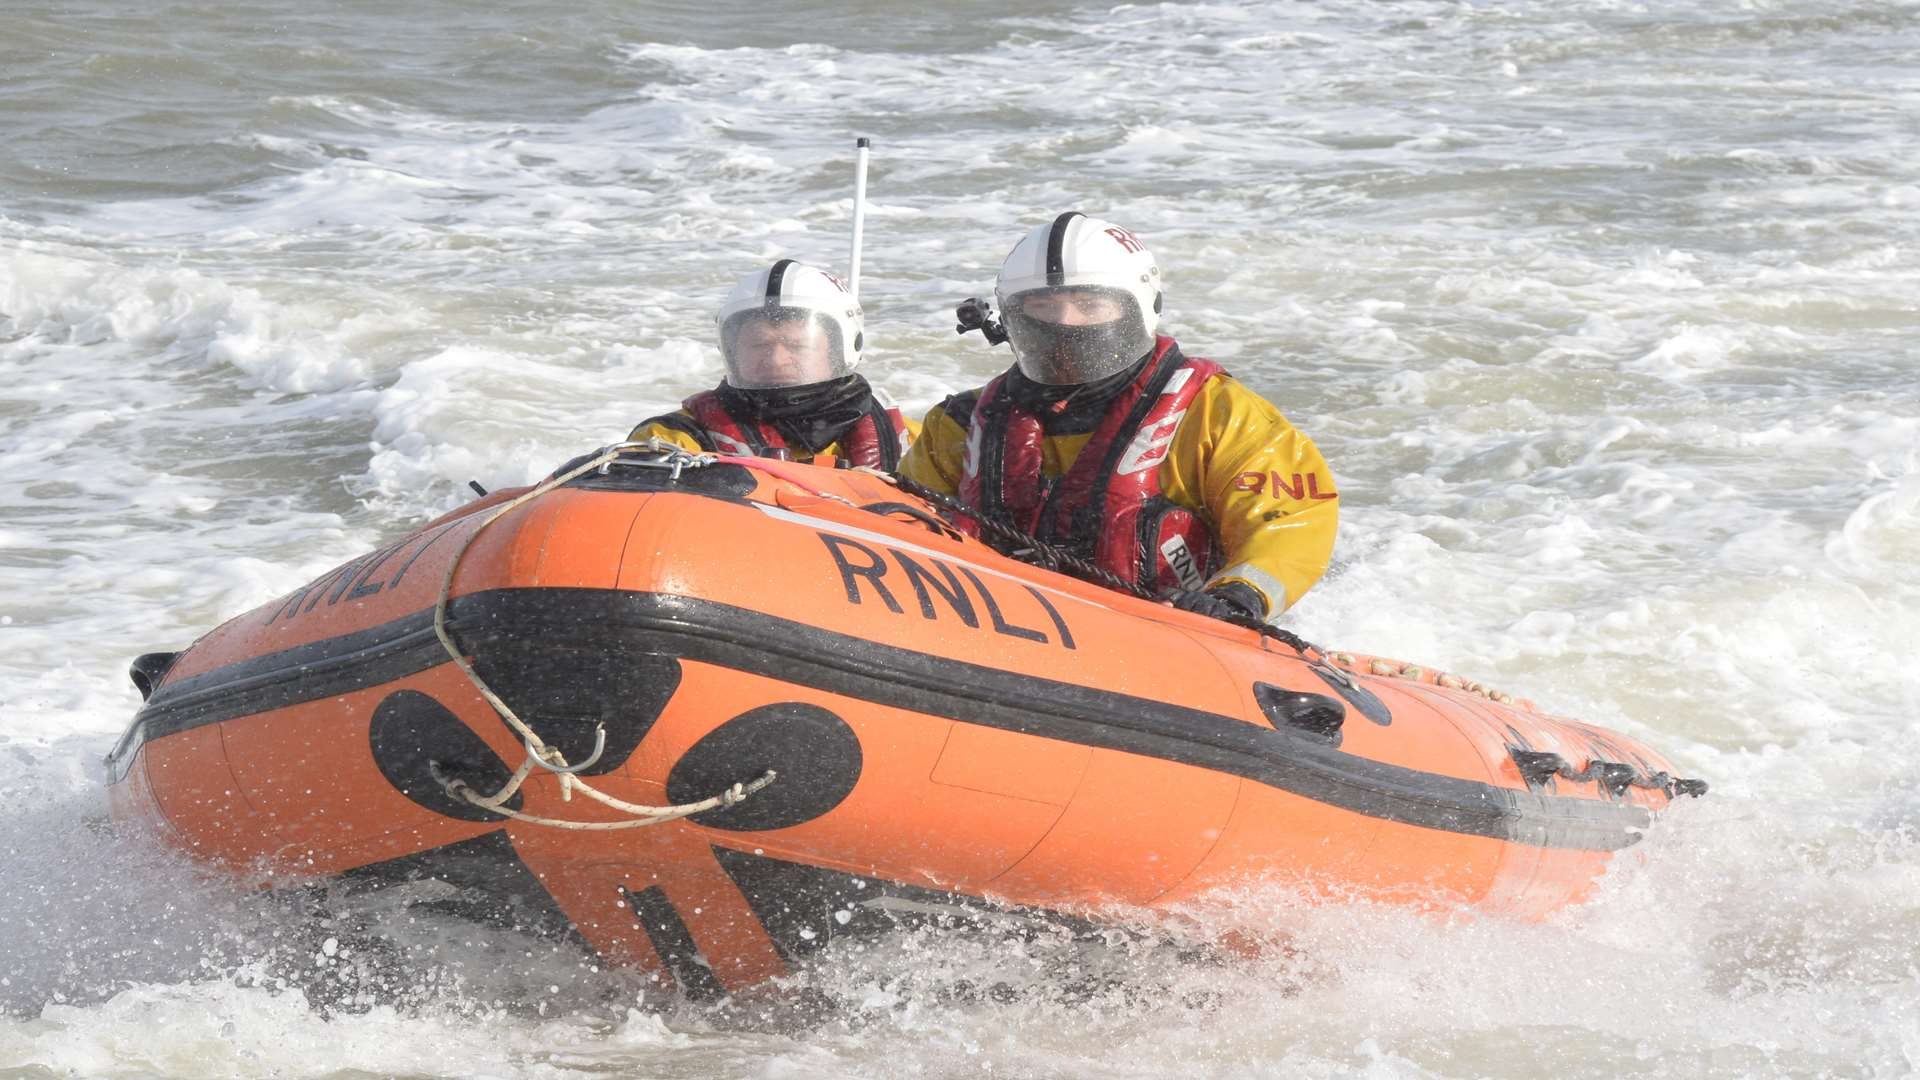 Gravesend RNLI was deployed to look for a person in distress.